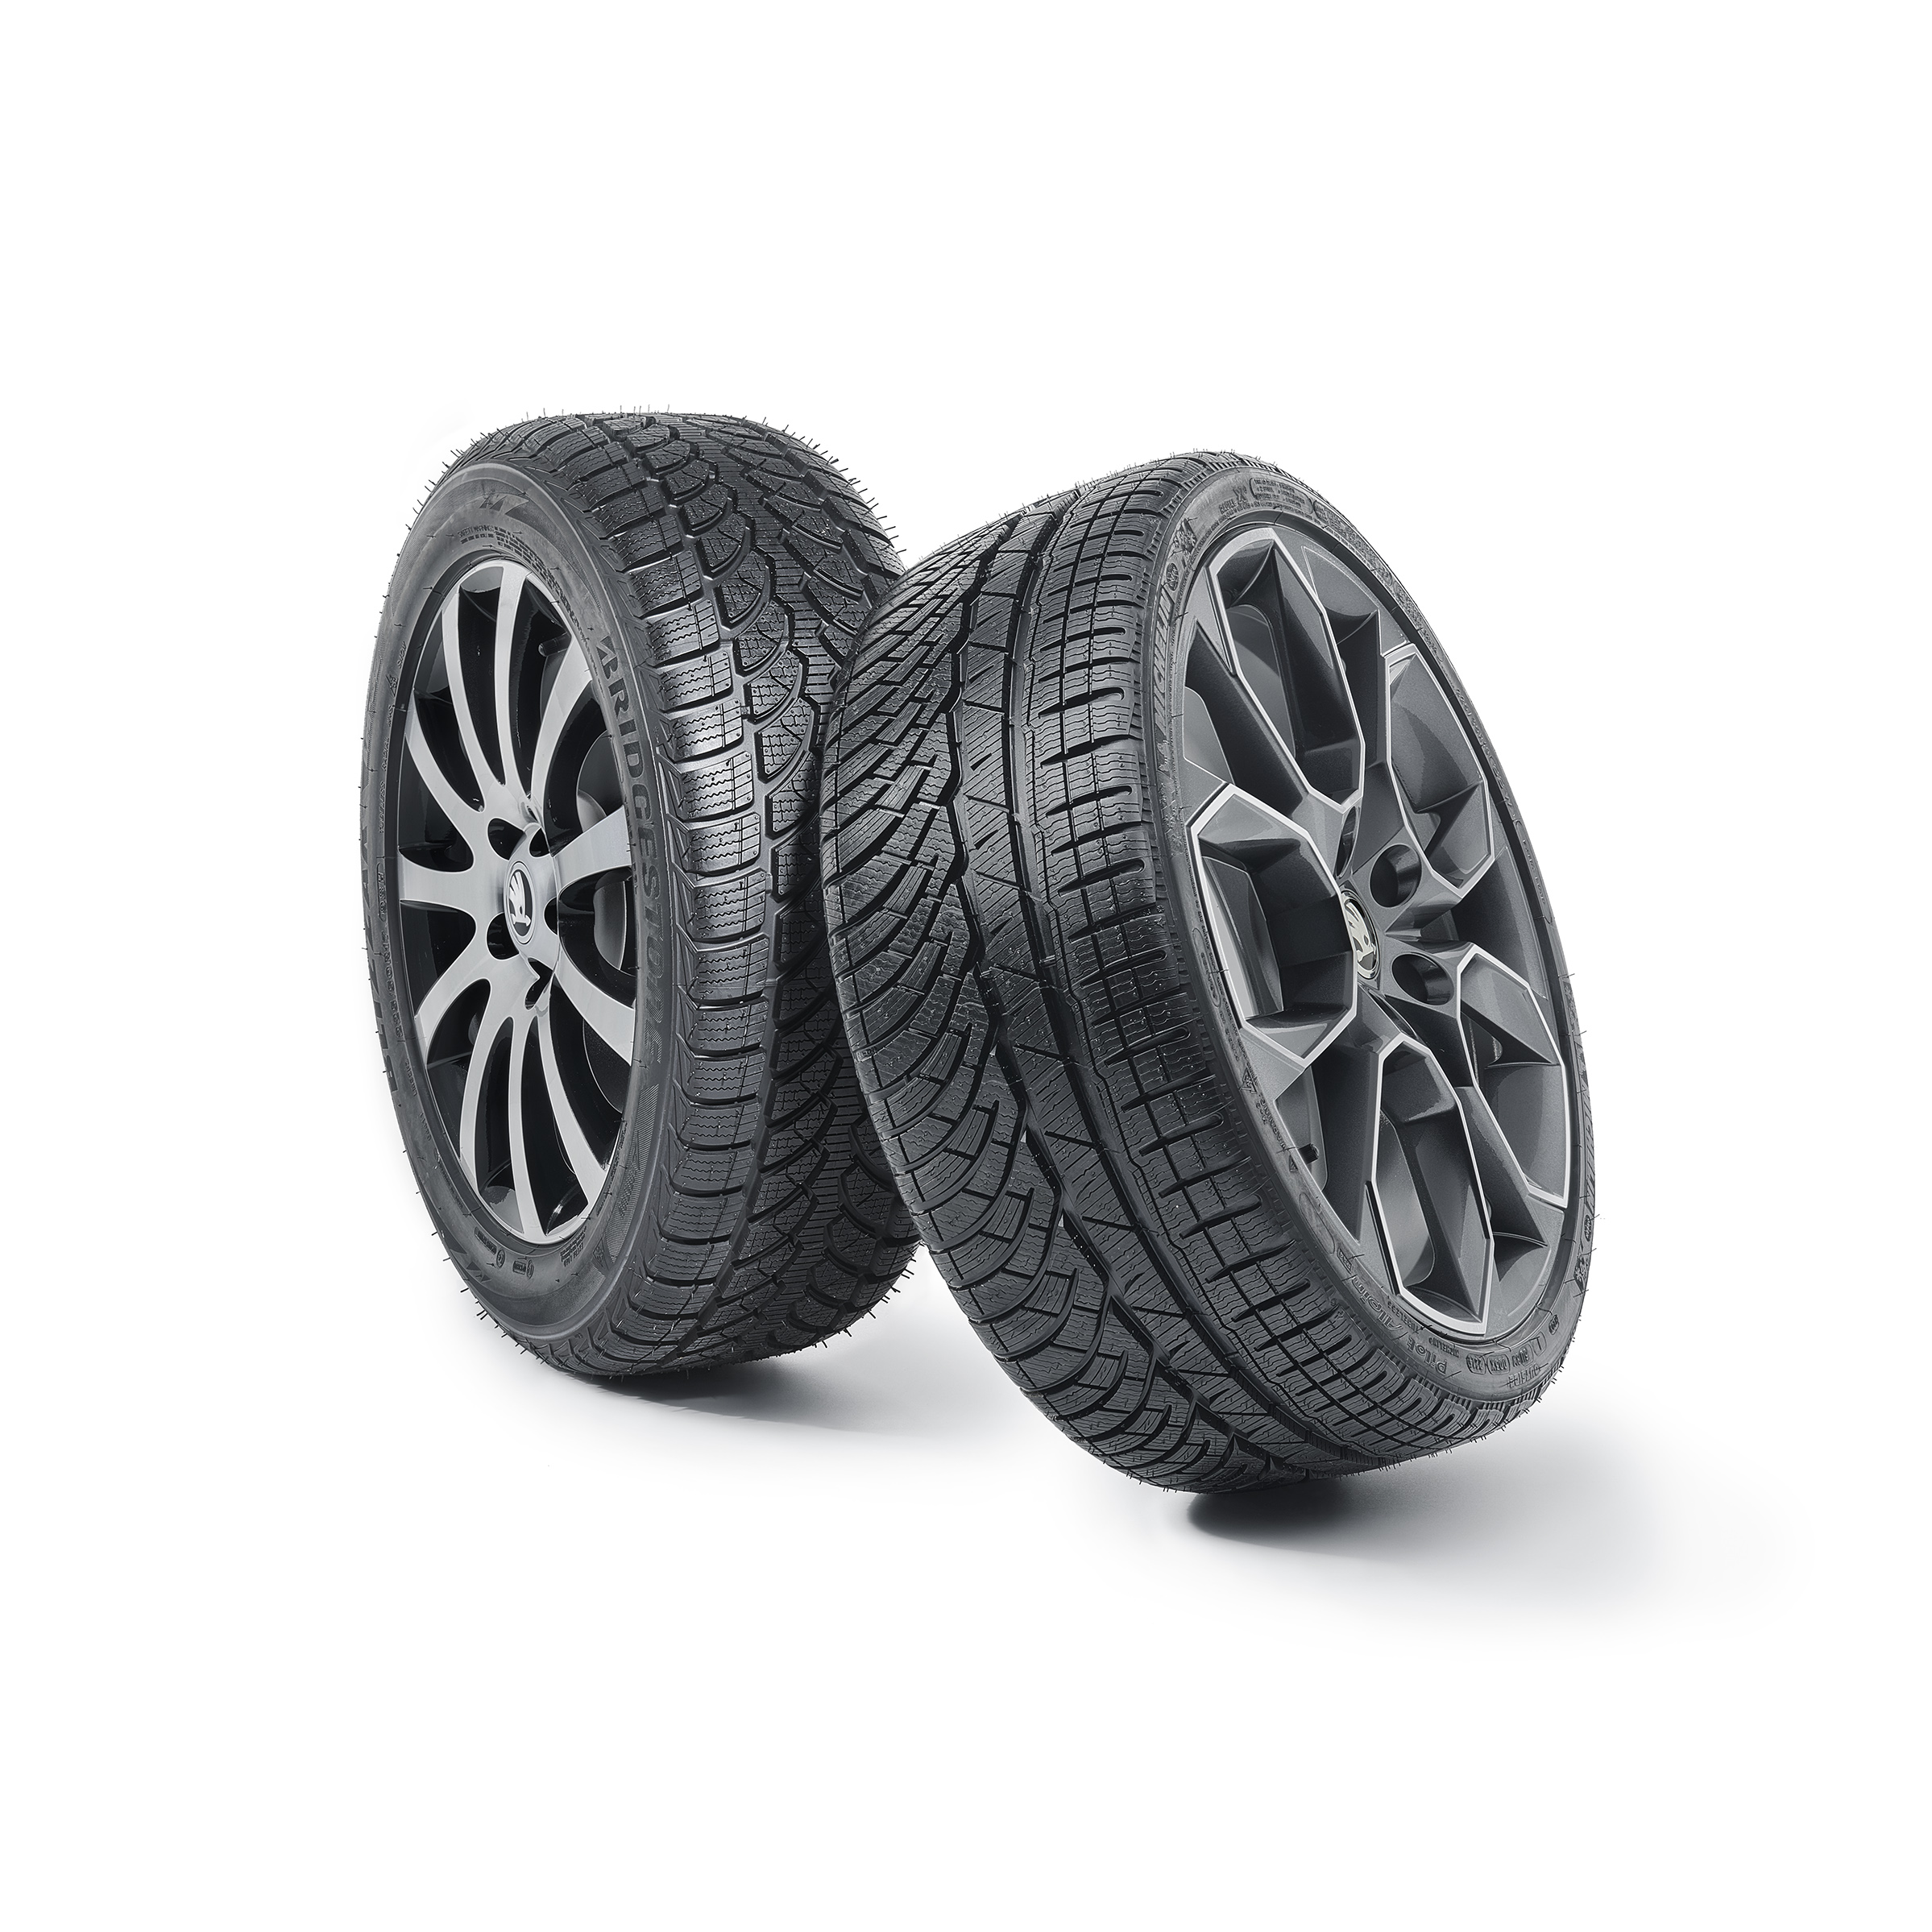 40% Off Alloys